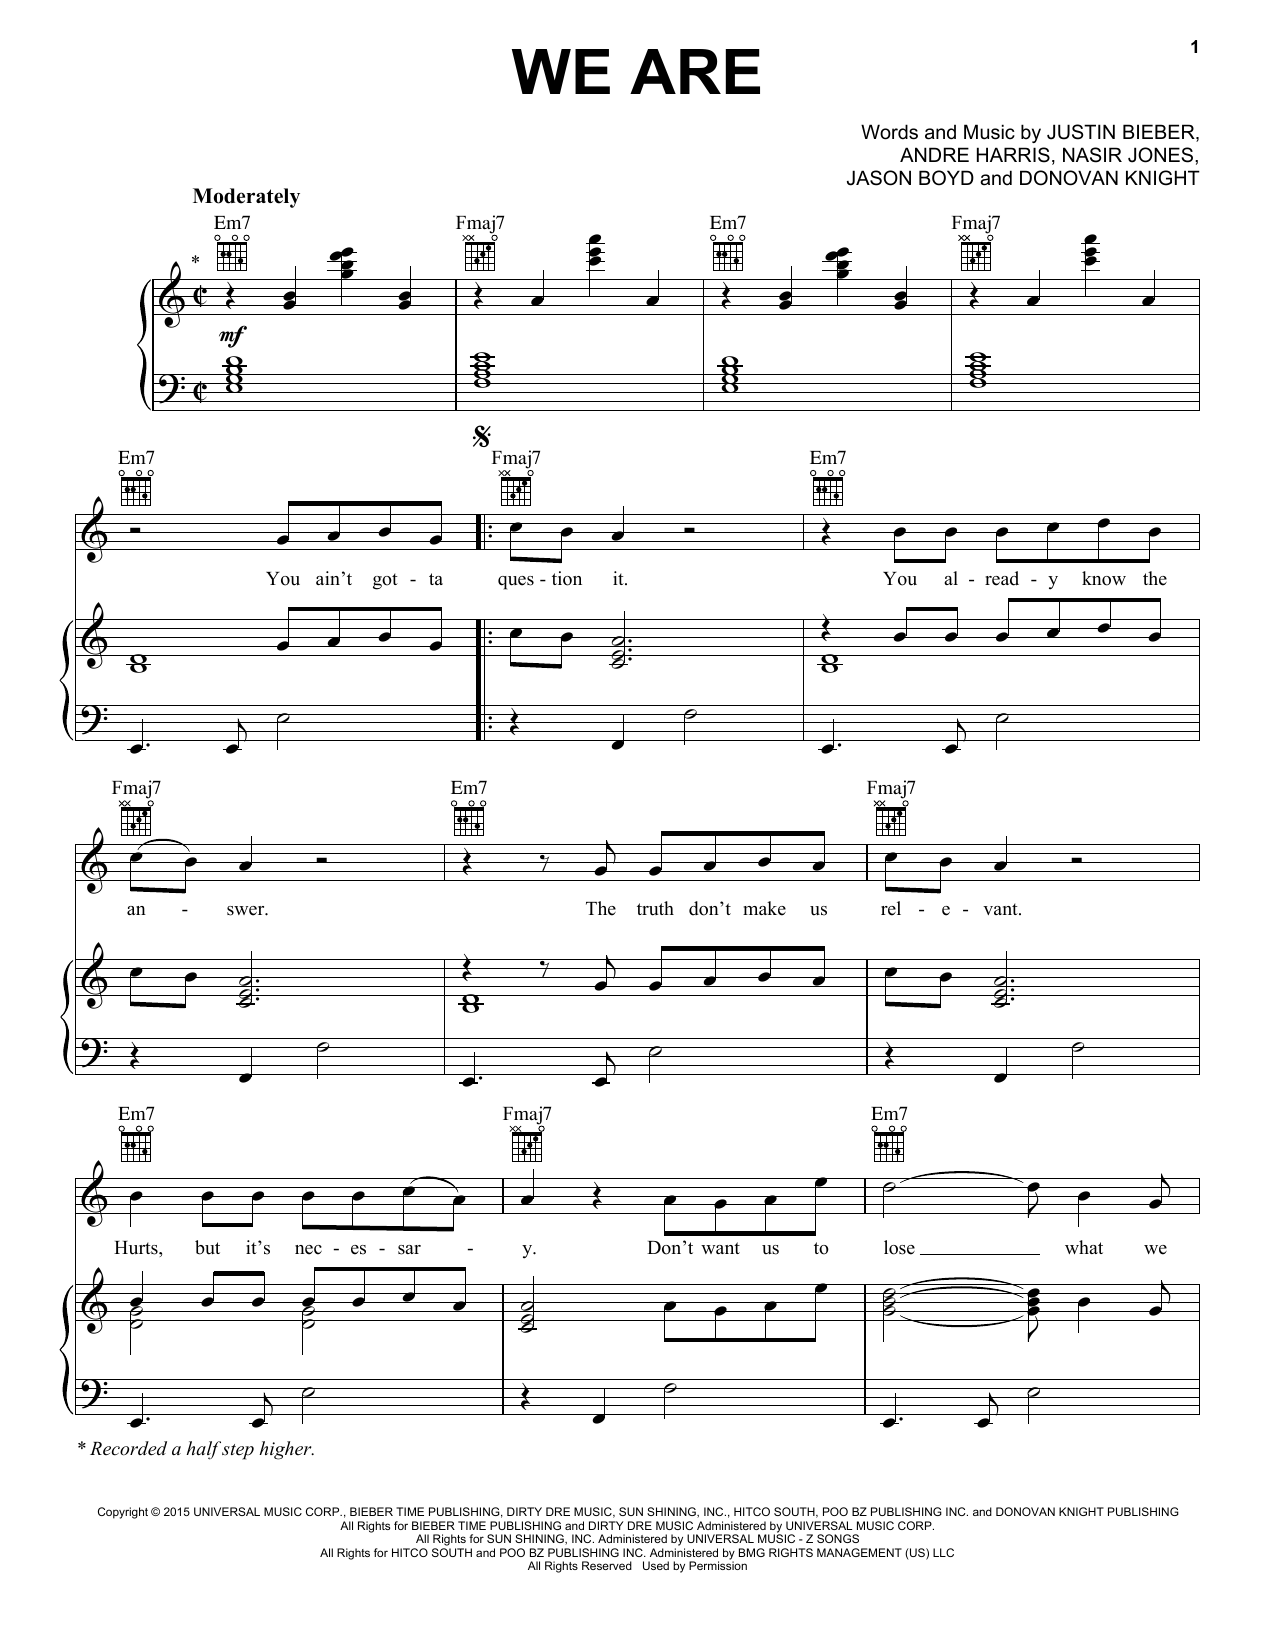 Justin Bieber We Are sheet music notes and chords. Download Printable PDF.